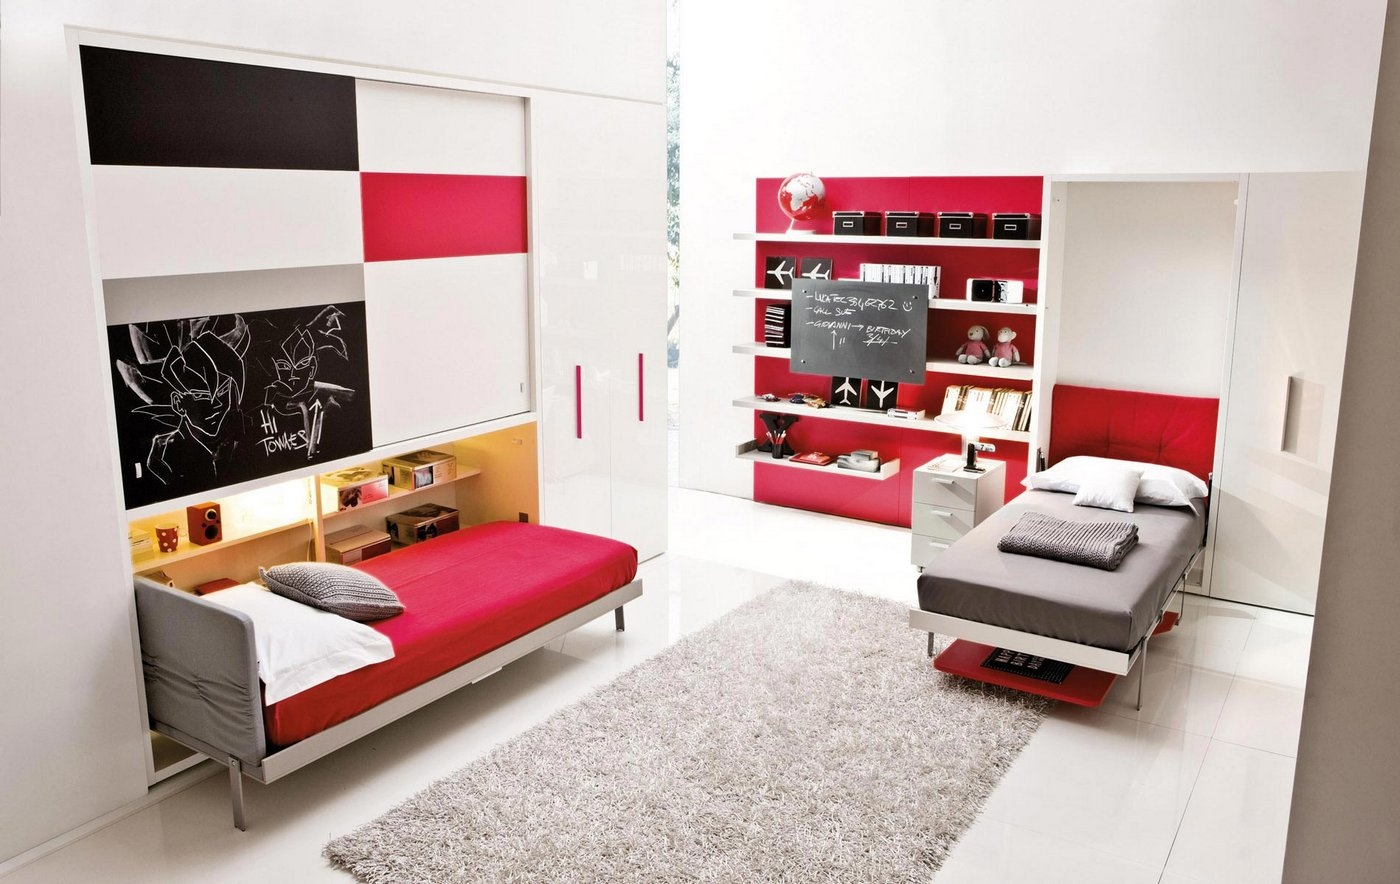 Inspirational Fold Up Beds for toddlers